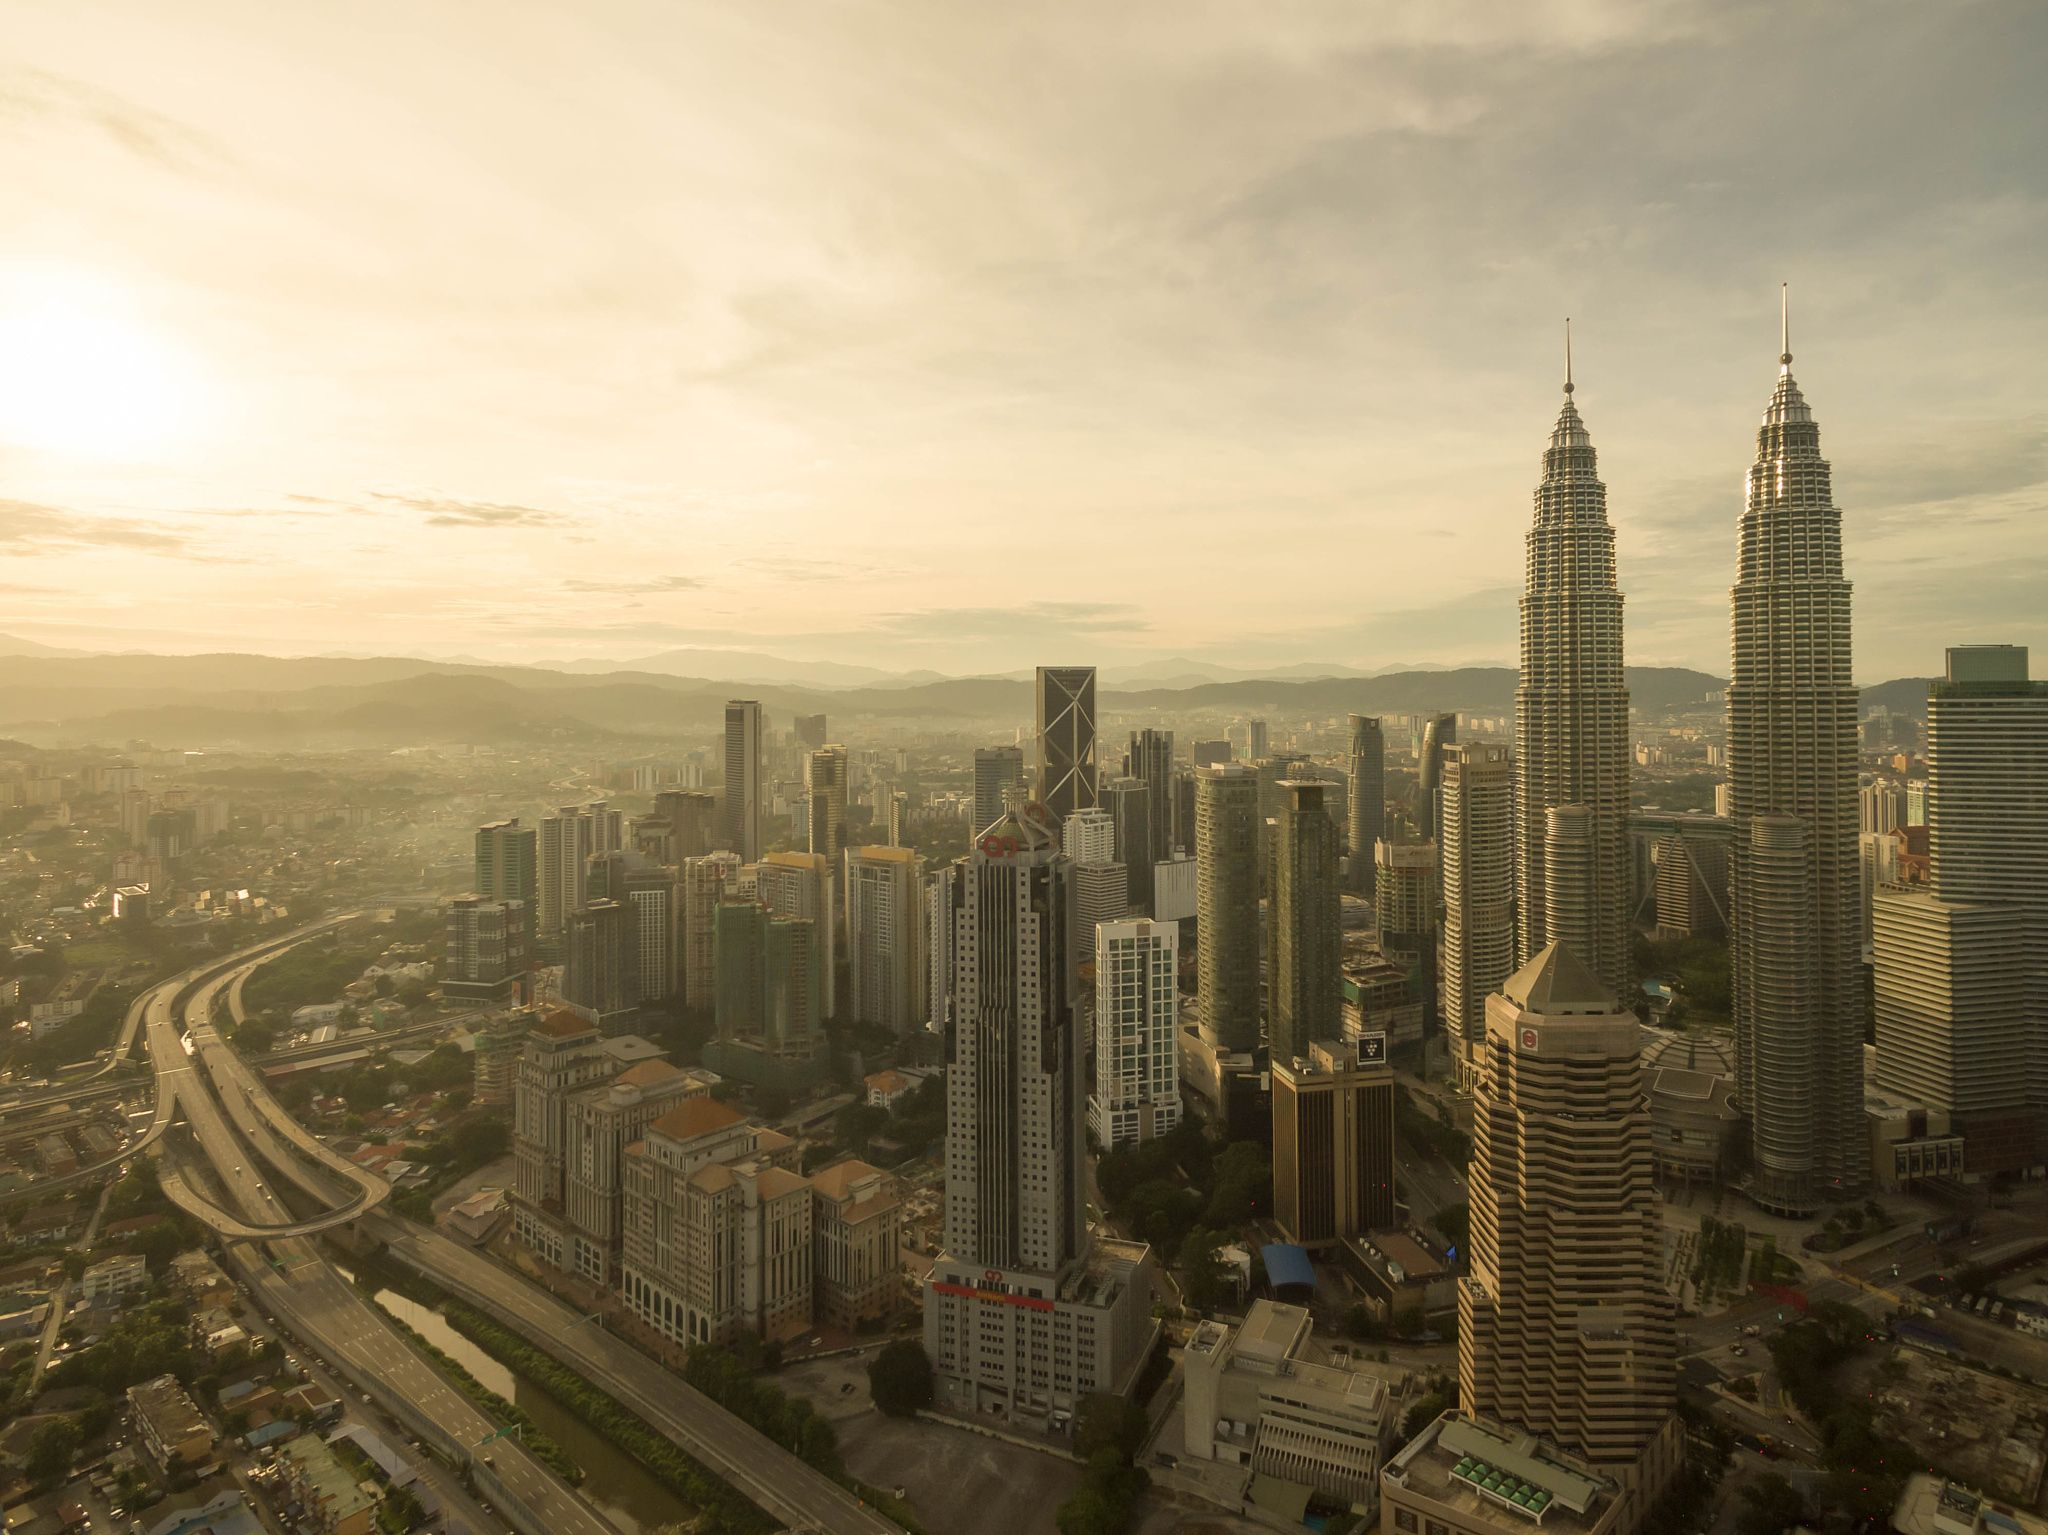 Golden city from the top - Kuala Lumpur, Malaysia - Jun 25, 2016: Aerial view of…